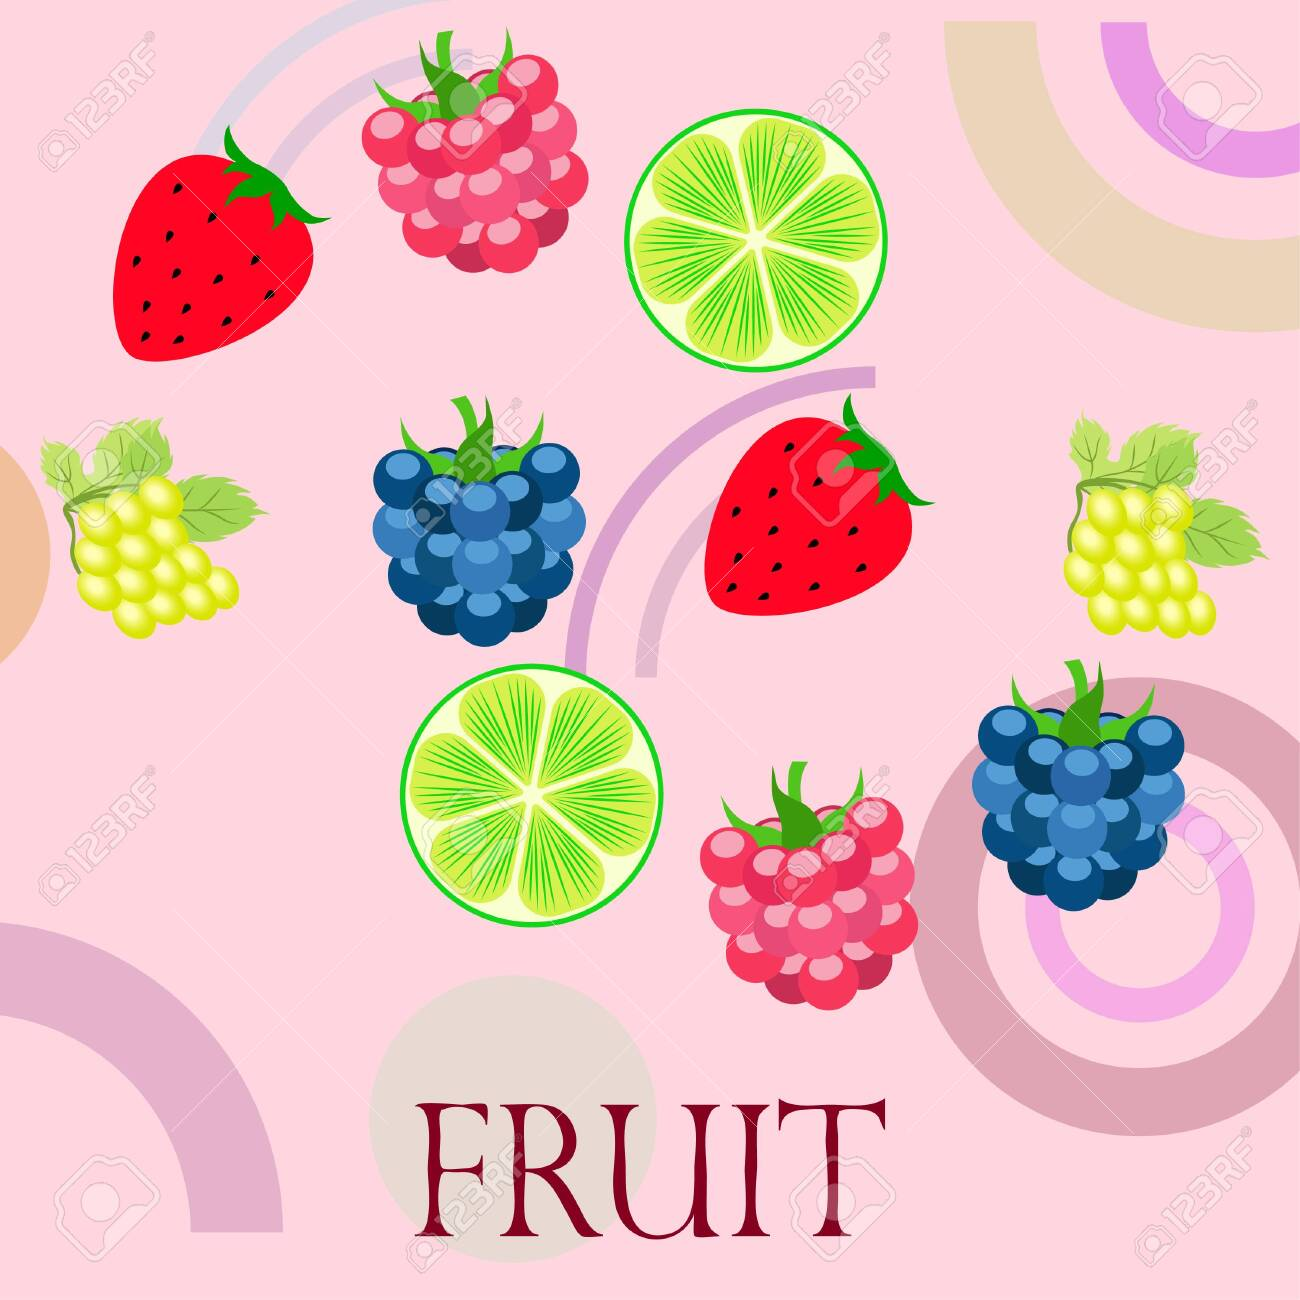 Fruits and berries. Colorful cartoon fruit icons: blackberry, raspberry, grape, strawberr, lime. Vector background. - 128418068